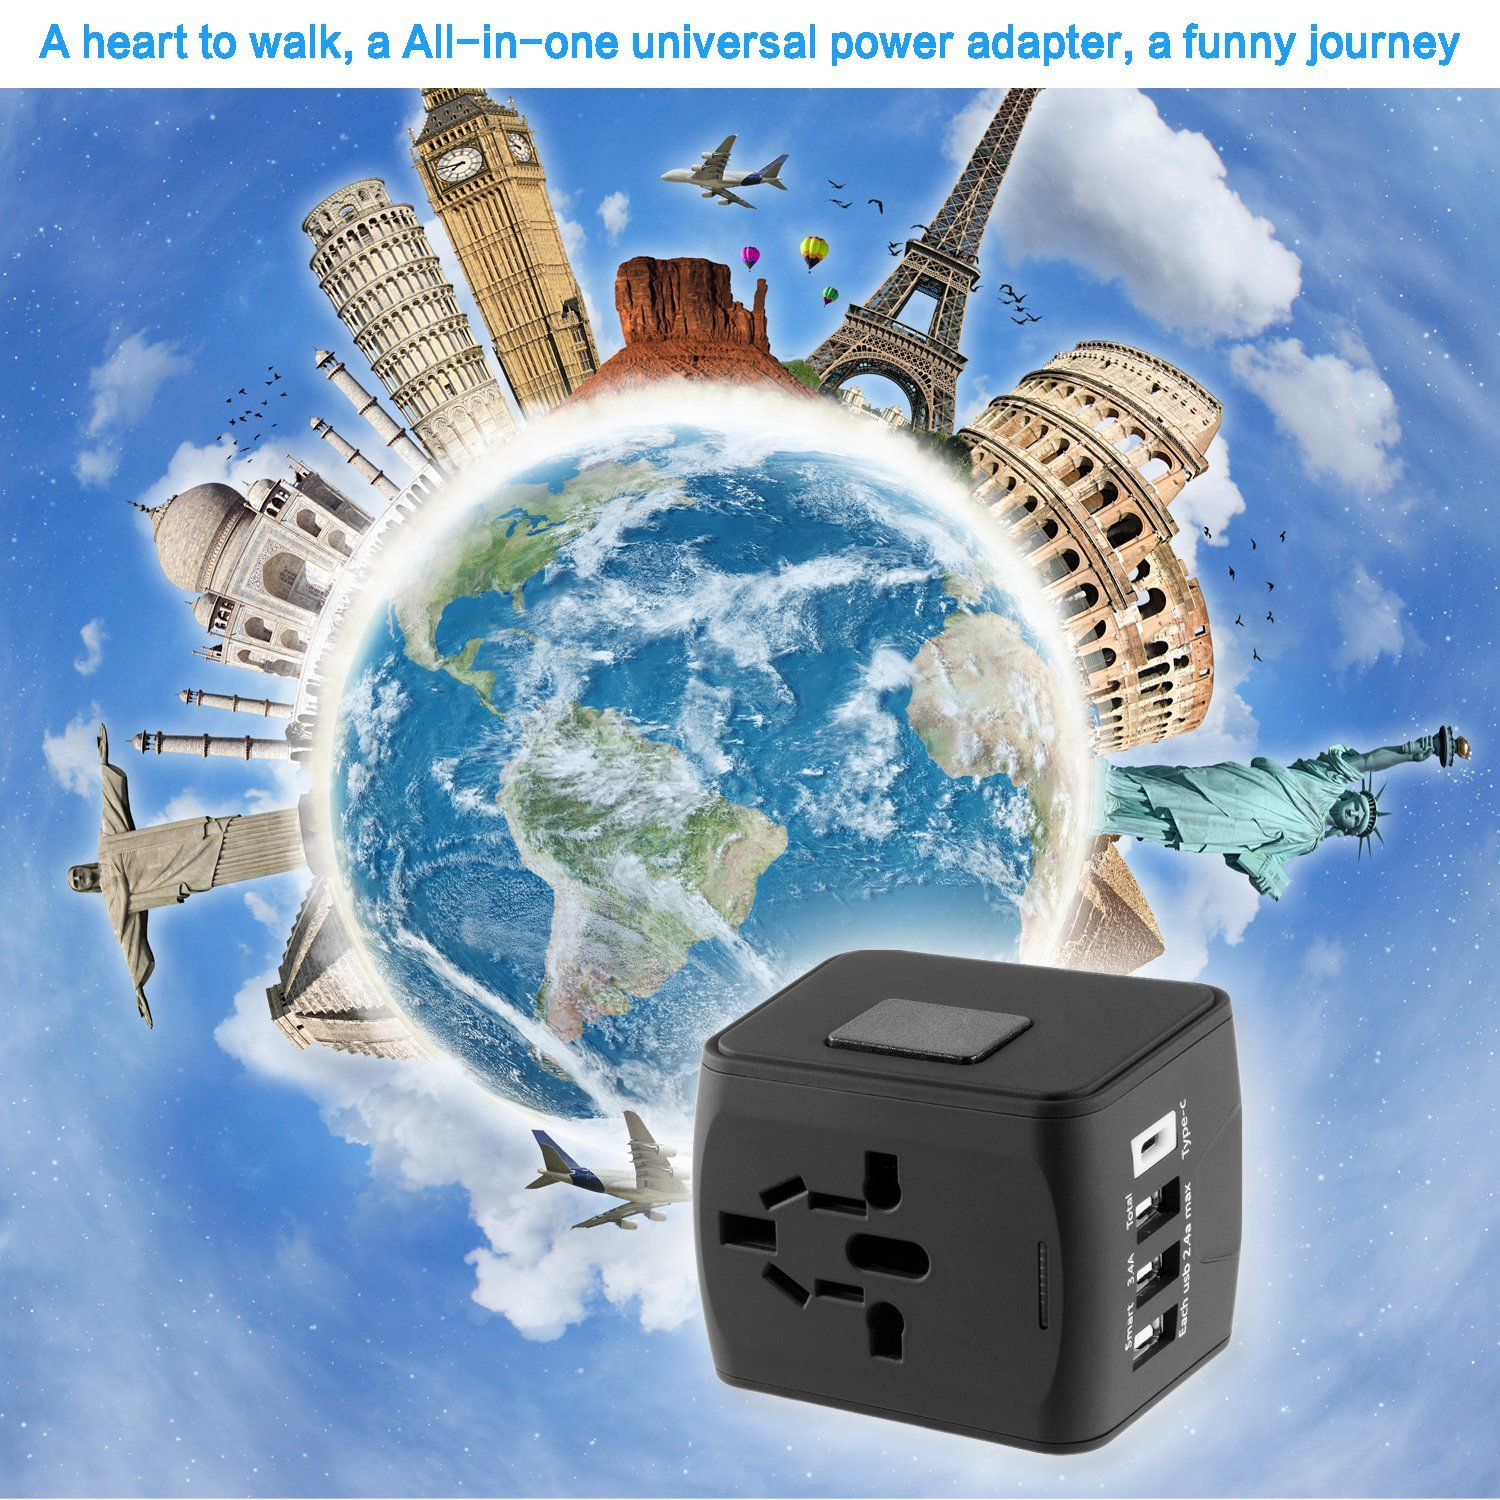 Travel Adapter, LezGo All-in-one Universal Power Adapter with 3.4A 3 USB Type C, European Plug Adapter International Plug adapter Wall Charger with UK, EU, AU, US for 200 countries